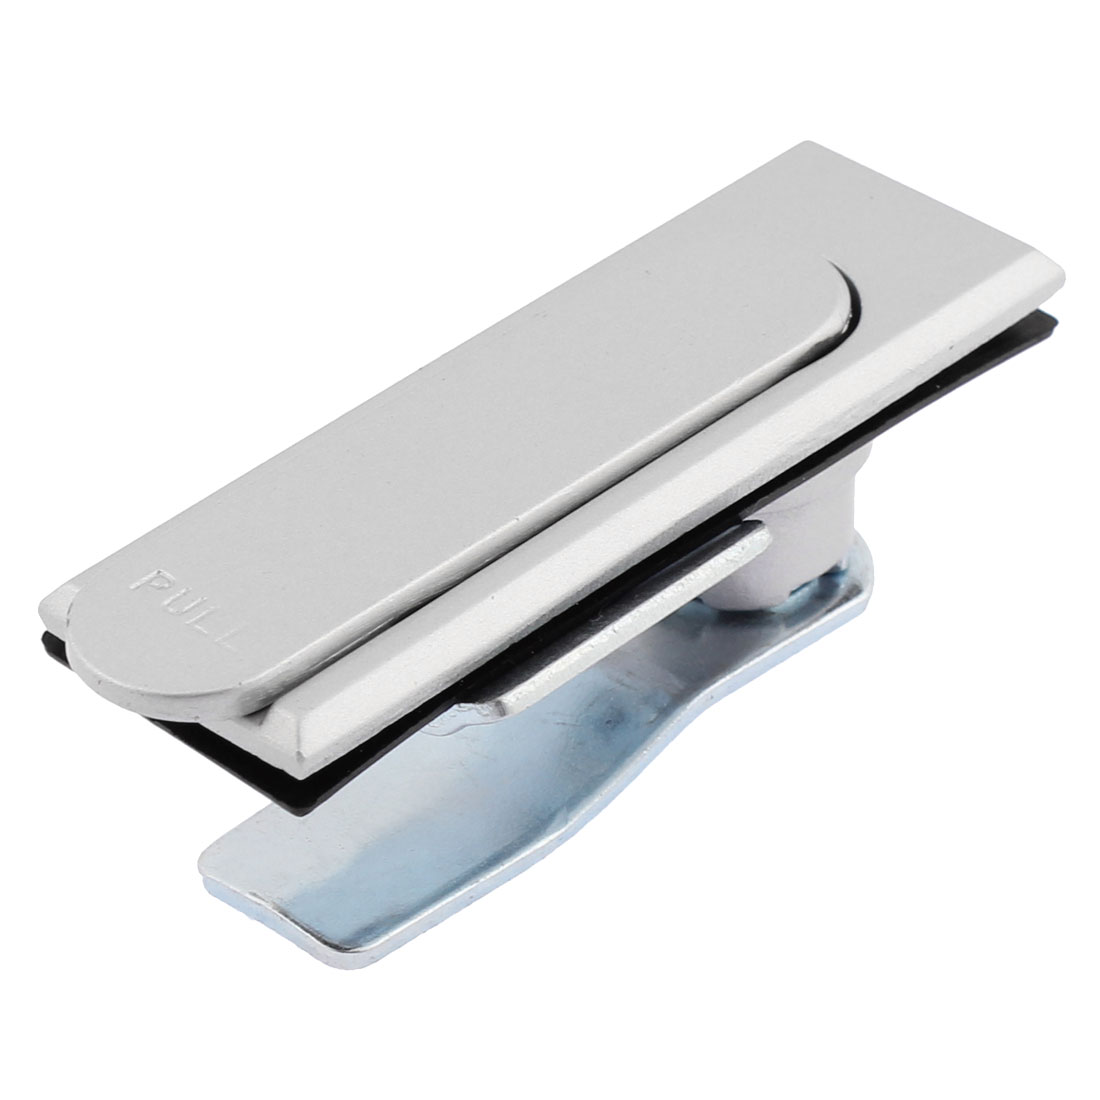 Machine 90mm Length Pull Button Cabinet Lock and Key Rectangle Metal Plane Silver Tone